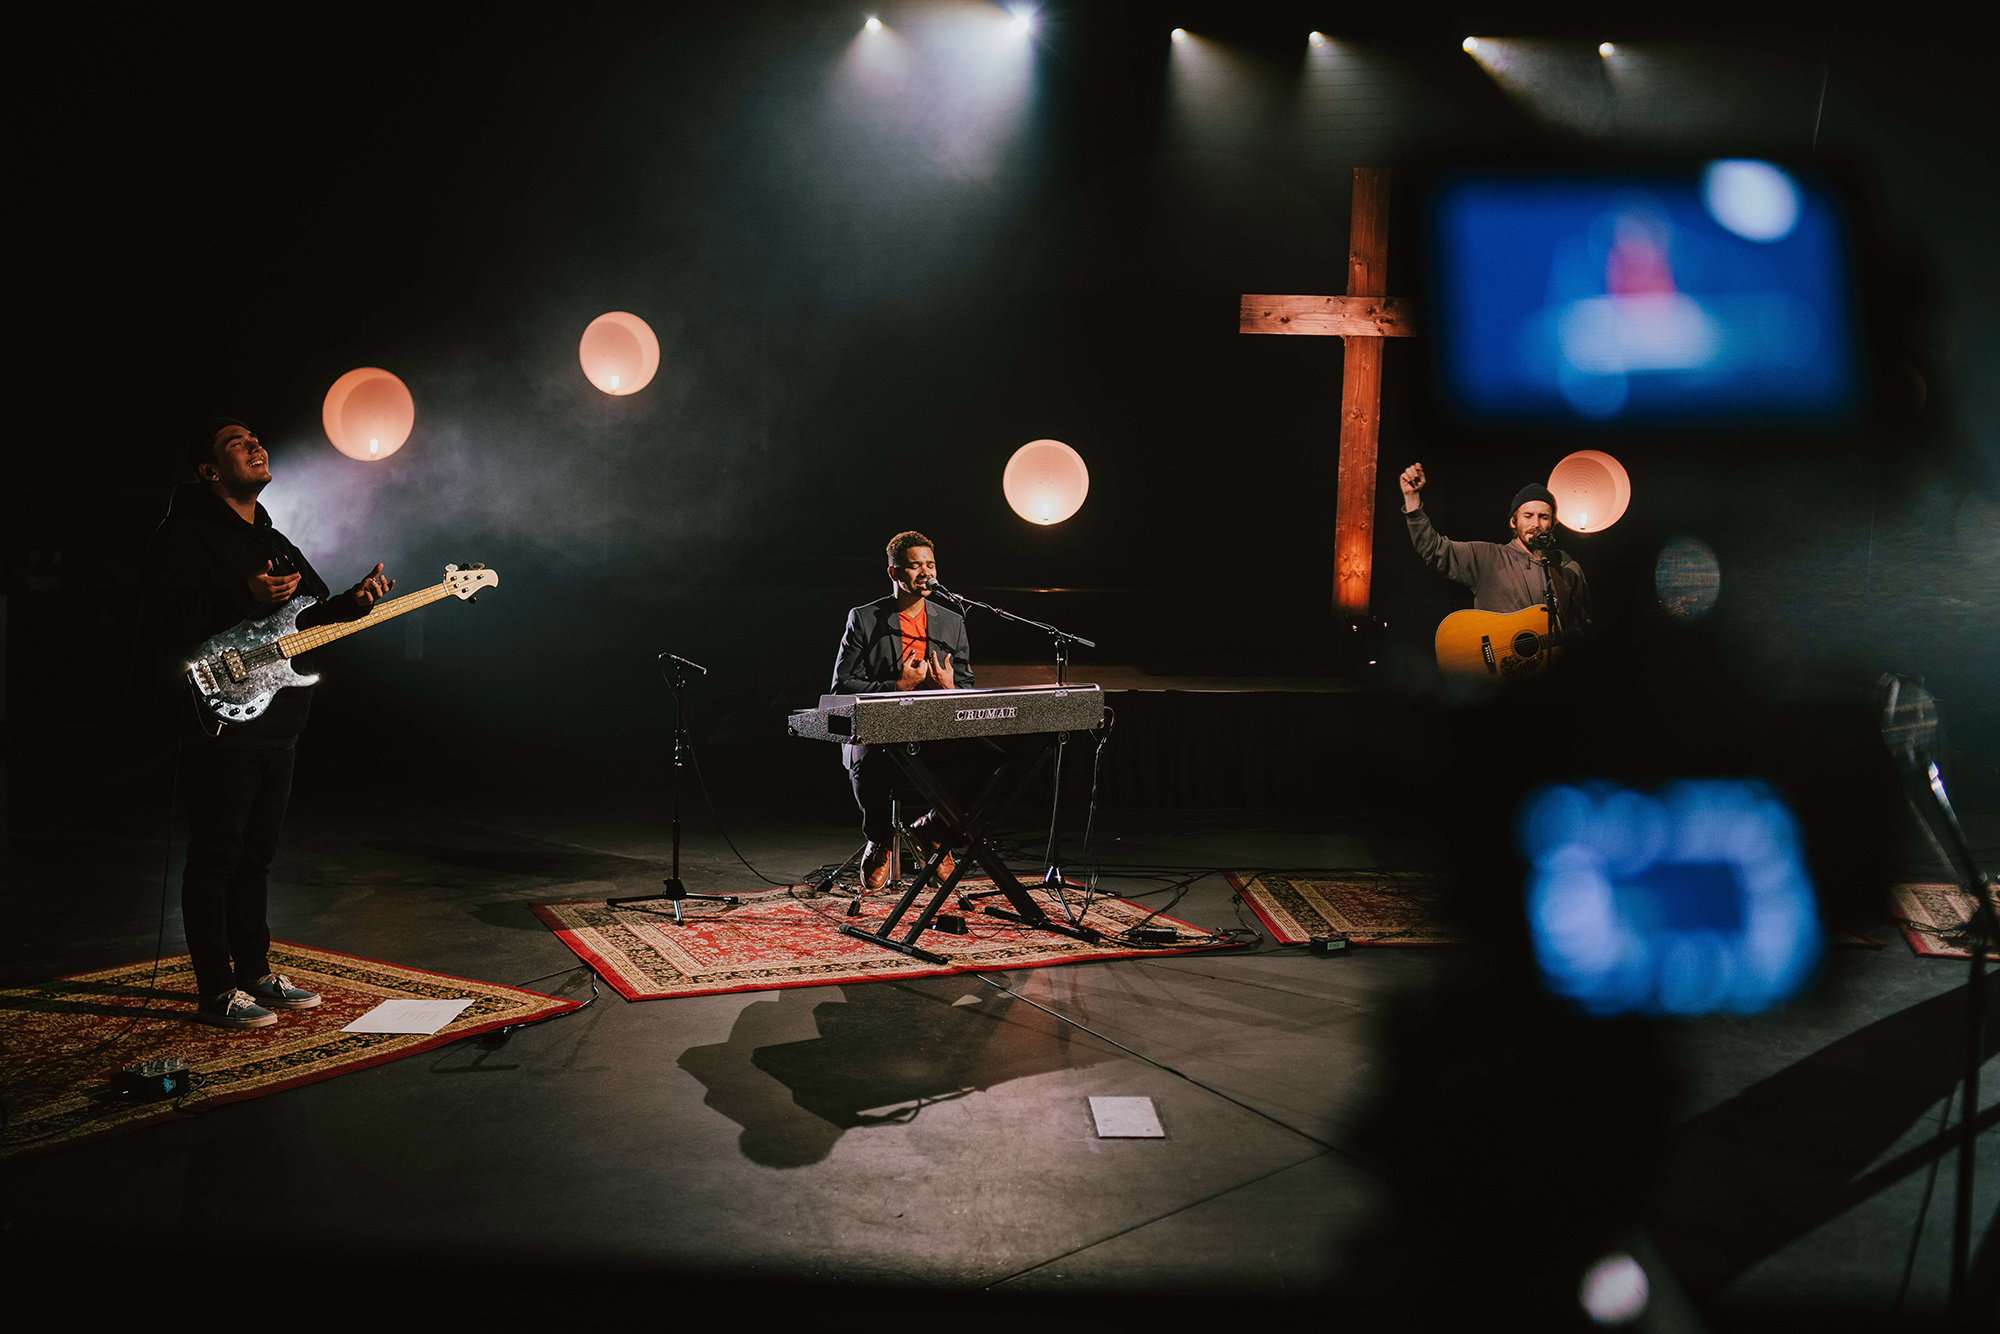 Socially distanced worship band in dark studio playing in front of crucifix.  Each band member has their own rug. Left to right: bassist with hands apart in praise, keyboardist singing, acoustic guitarist with one fist raised.